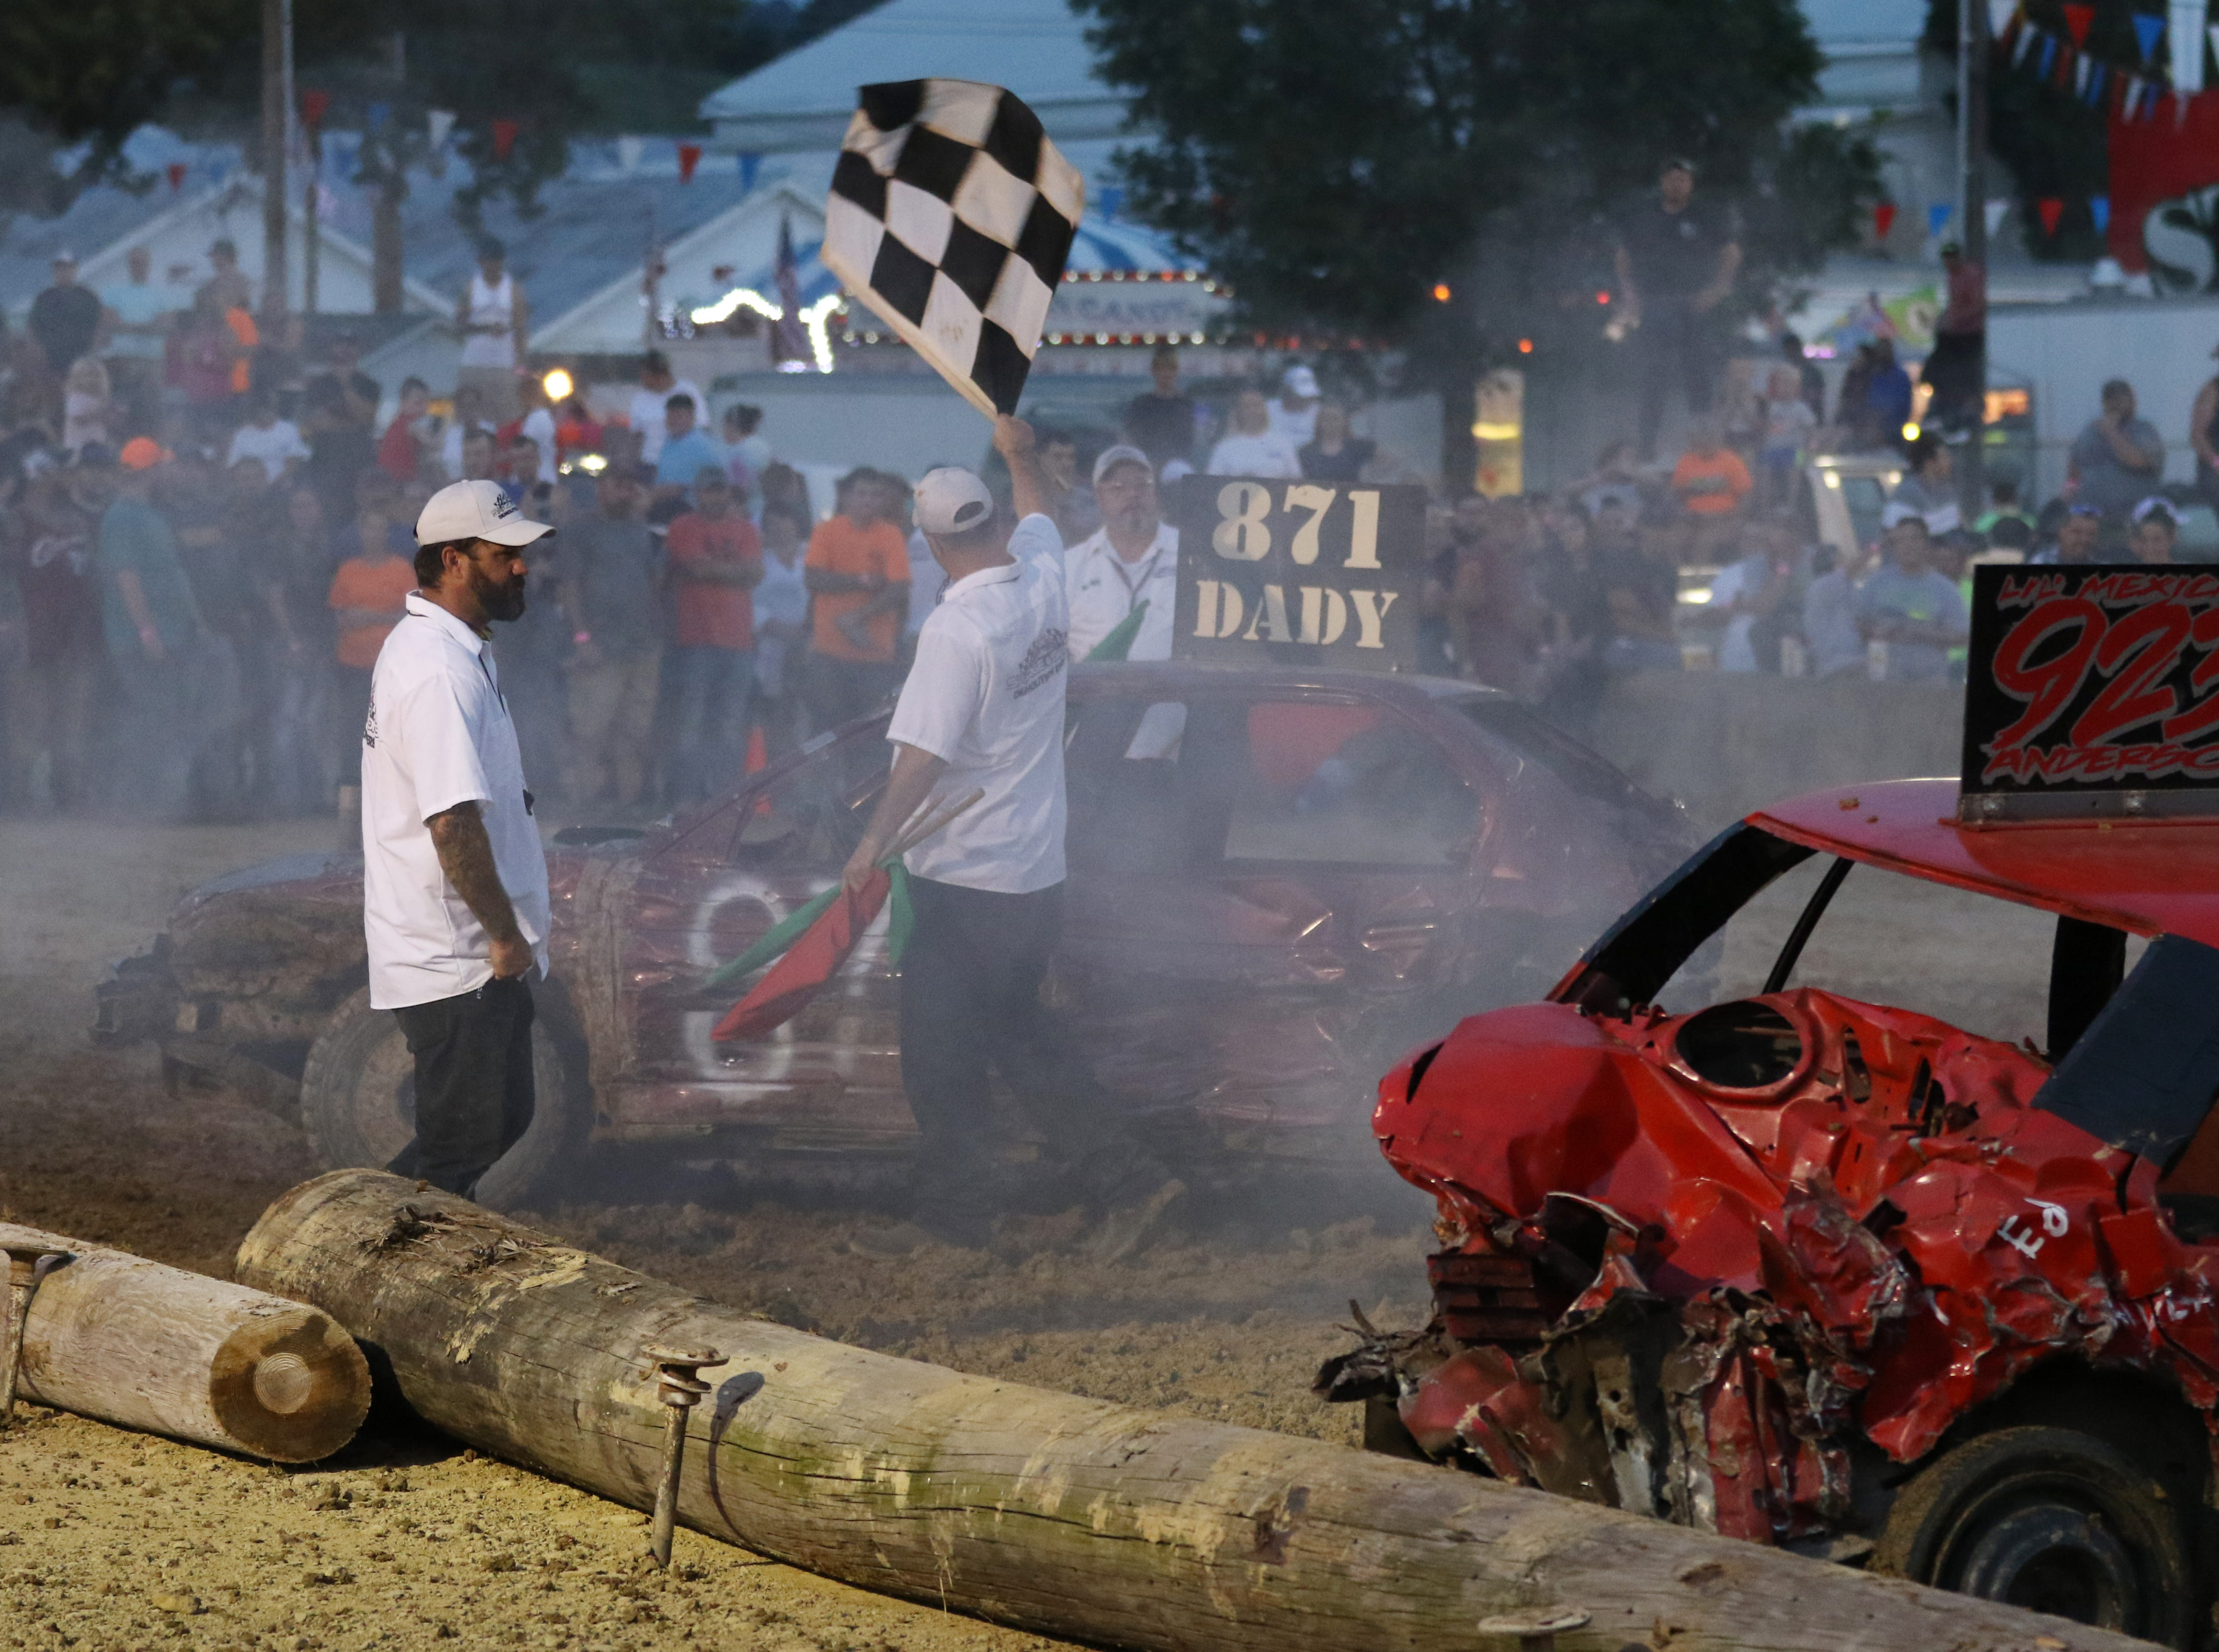 Jim Dady wins the second heat of the Sarge and Sons Demolition Derby at the Muskingum County Fair on Tuesday.